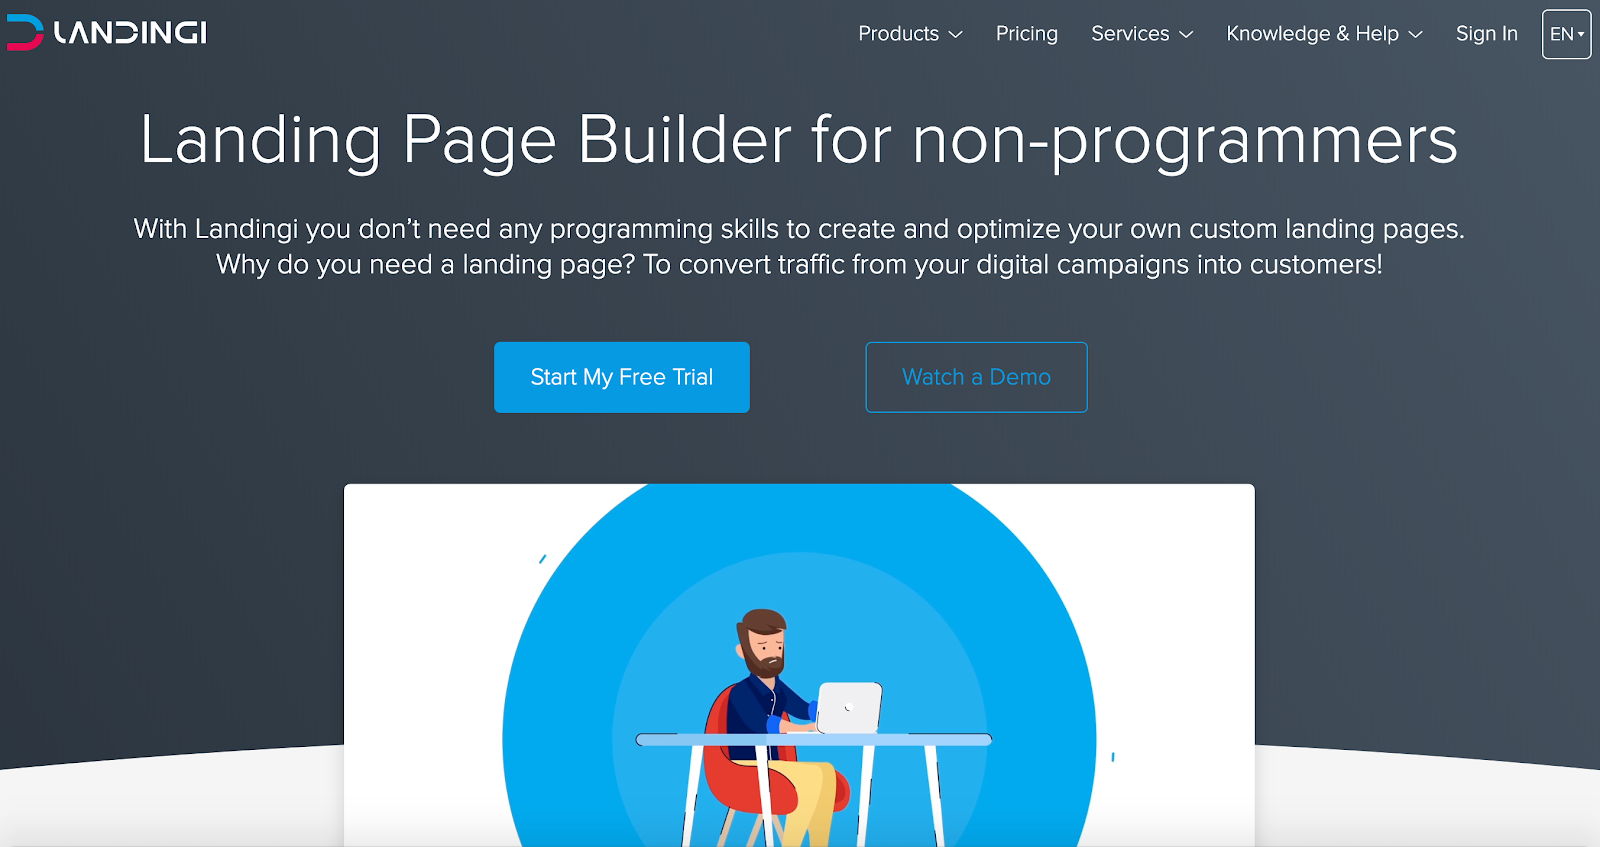 landing page builder for non-programmers